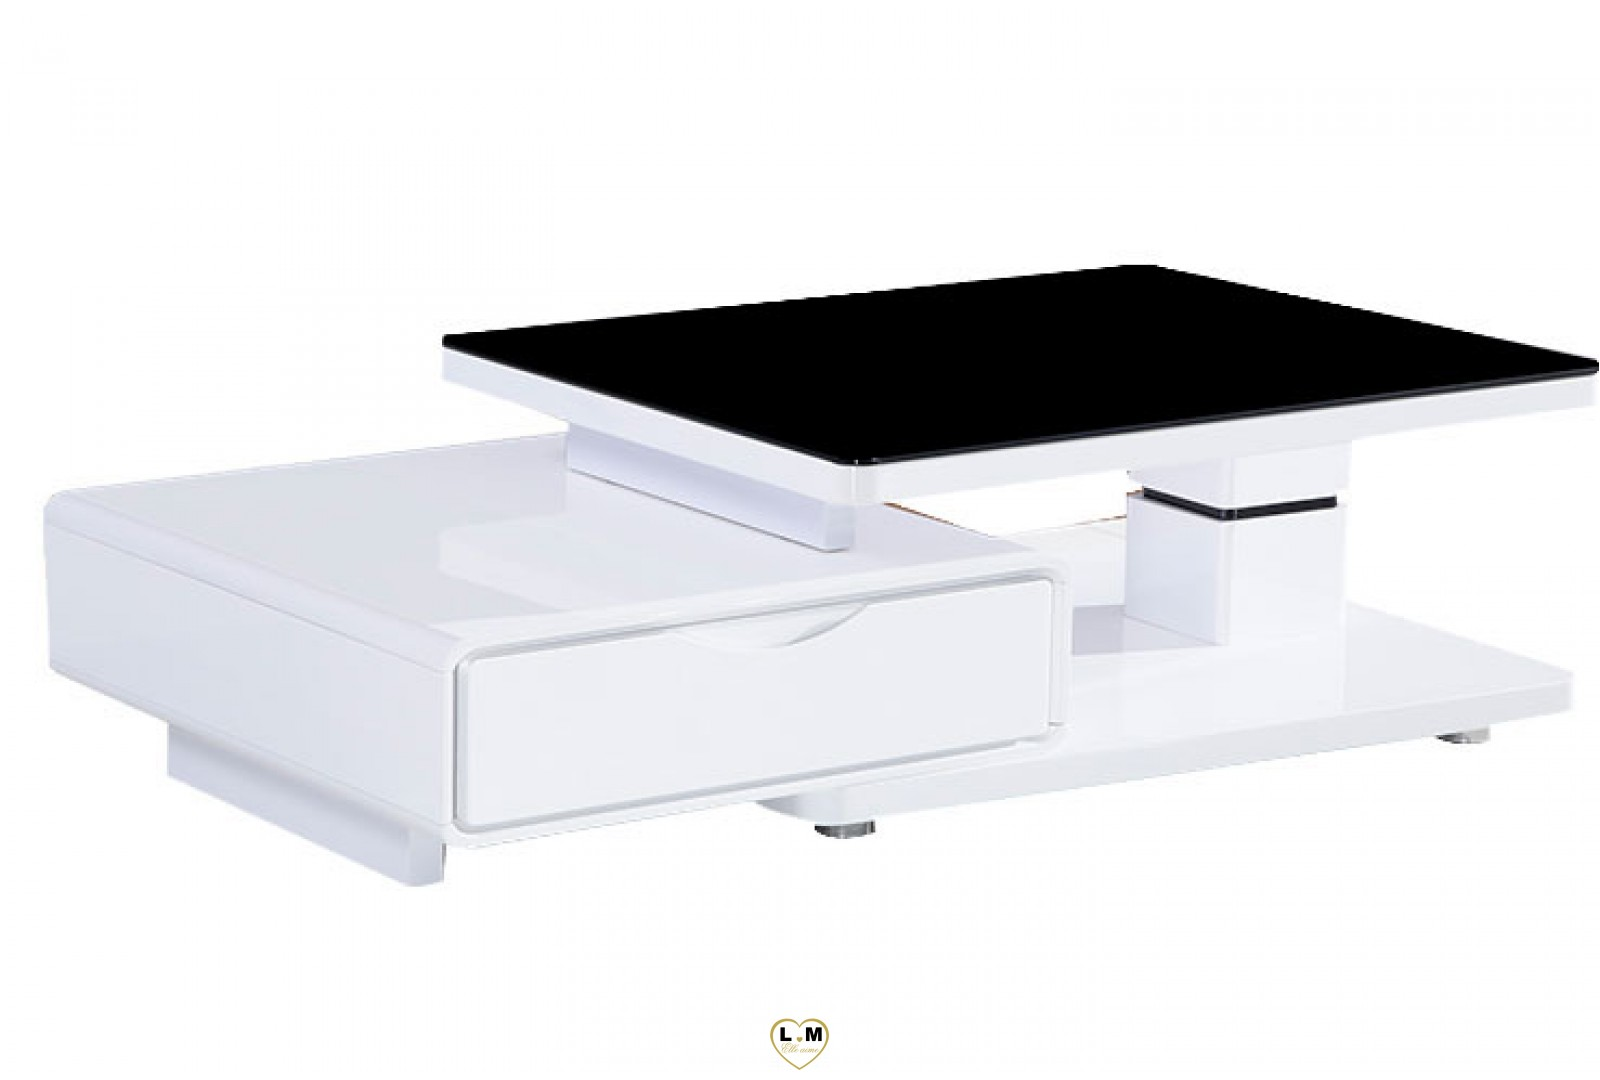 tba128b table basse laque blanc verre noir lignemeuble com. Black Bedroom Furniture Sets. Home Design Ideas